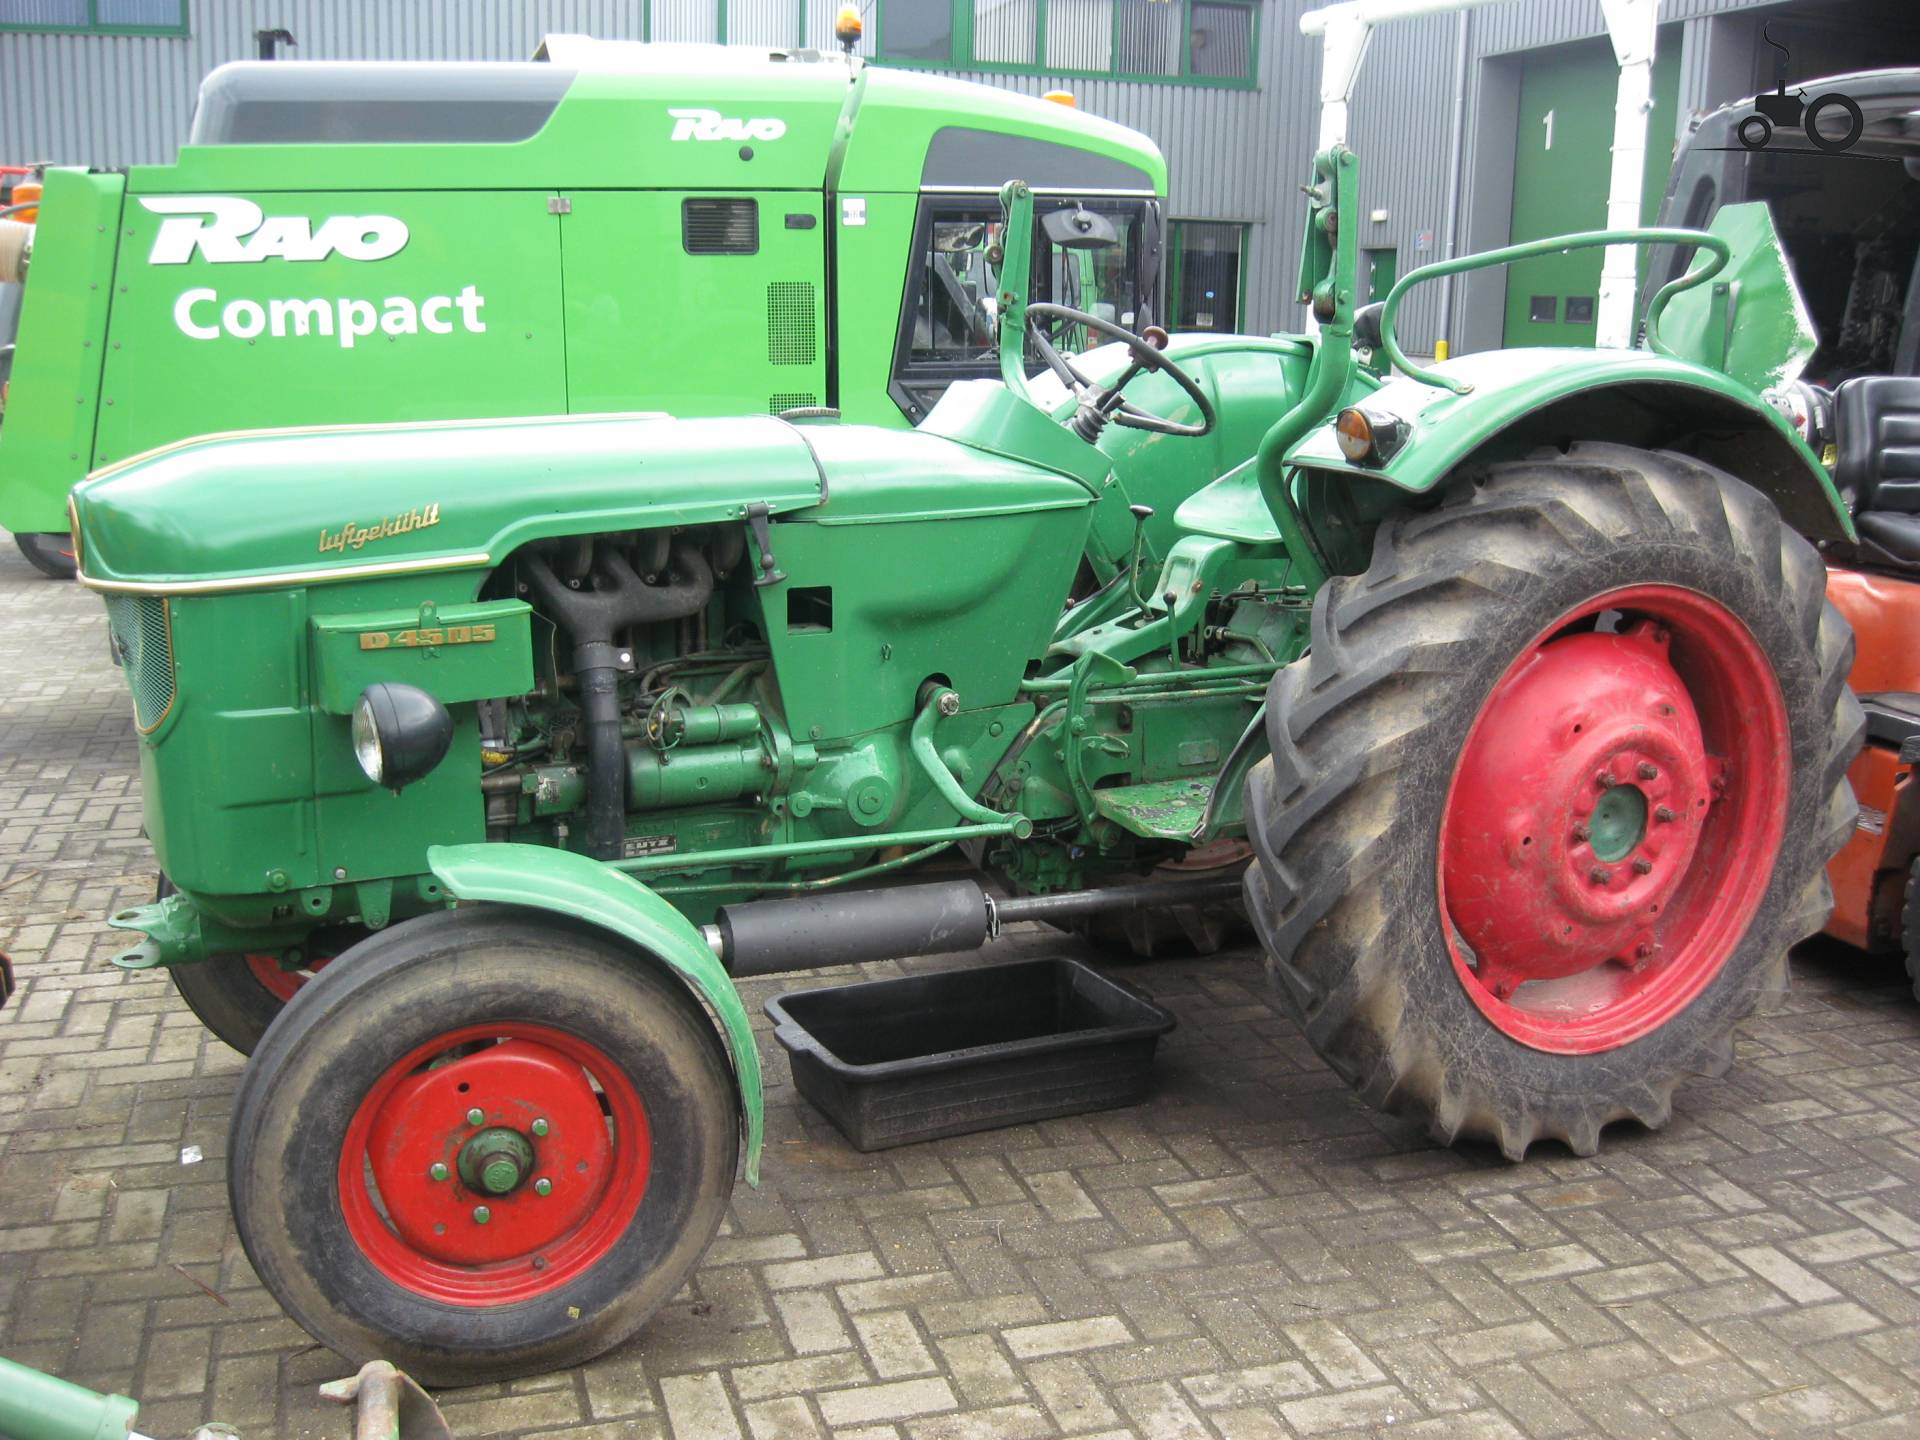 Deutz D4505 Specs and data - Everything about the Deutz D4505